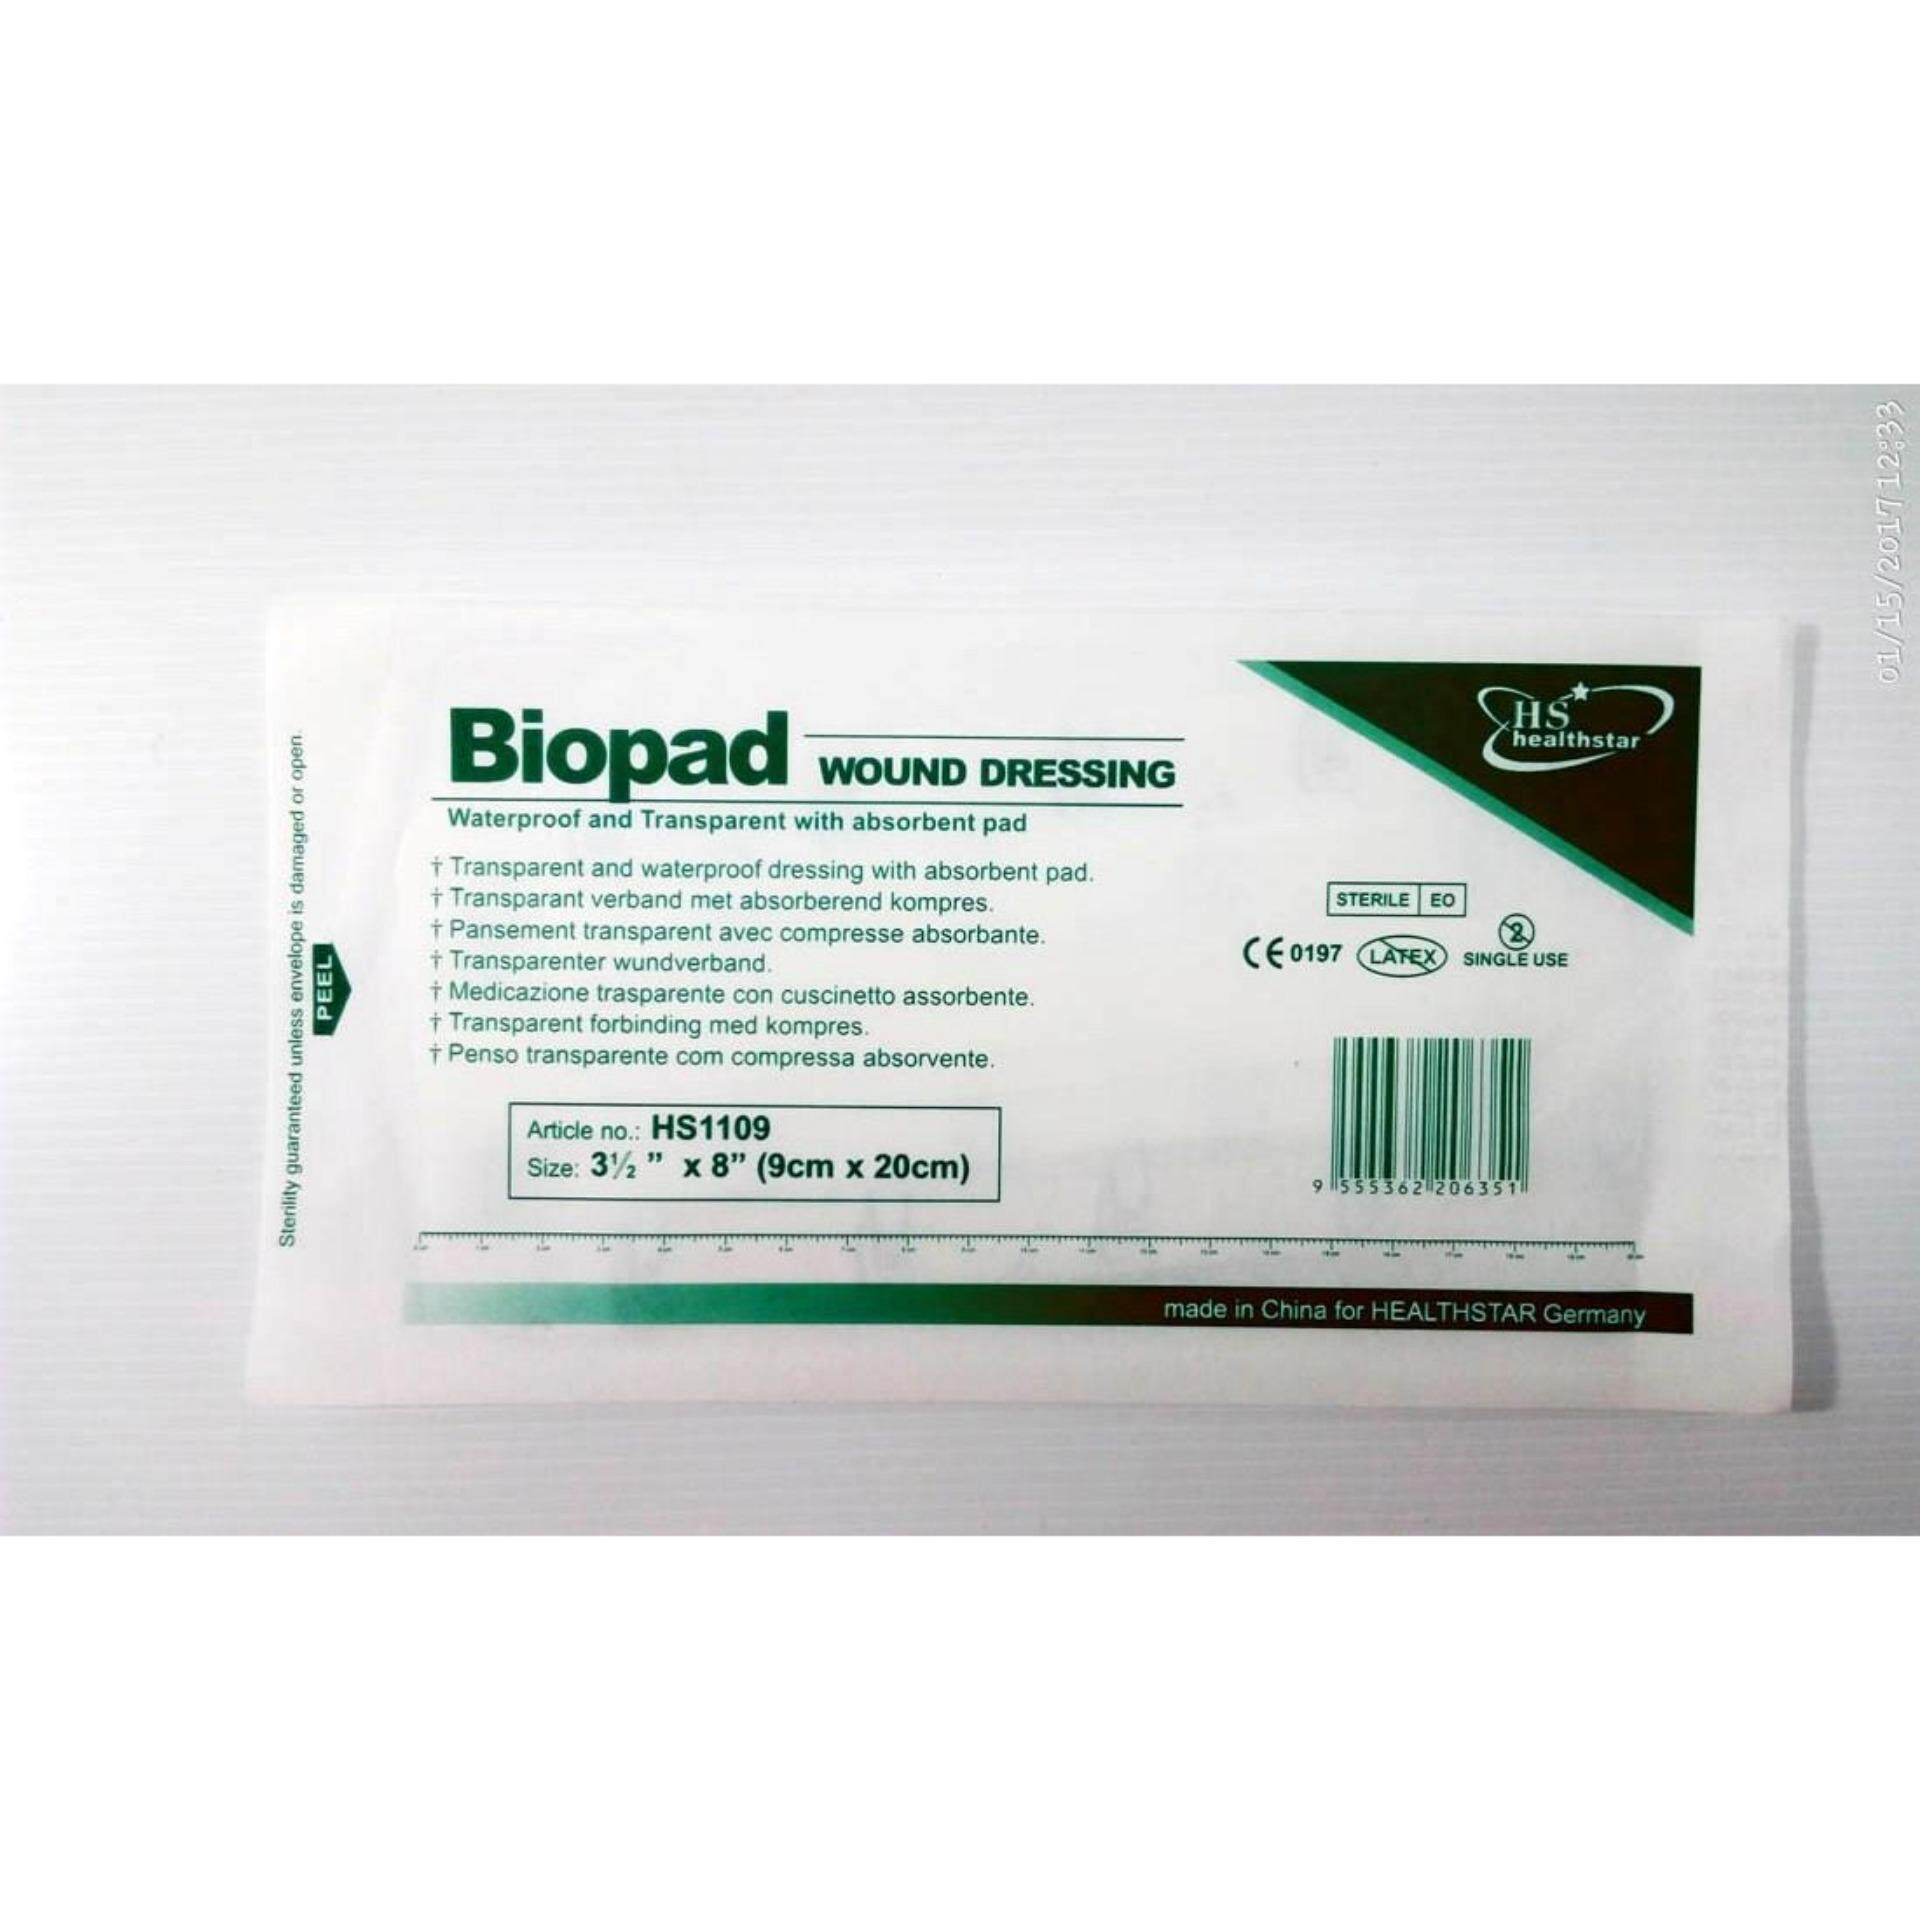 Biopad Wound Dressing Plaster 9cm X 20cm Extra Long X 3pieces